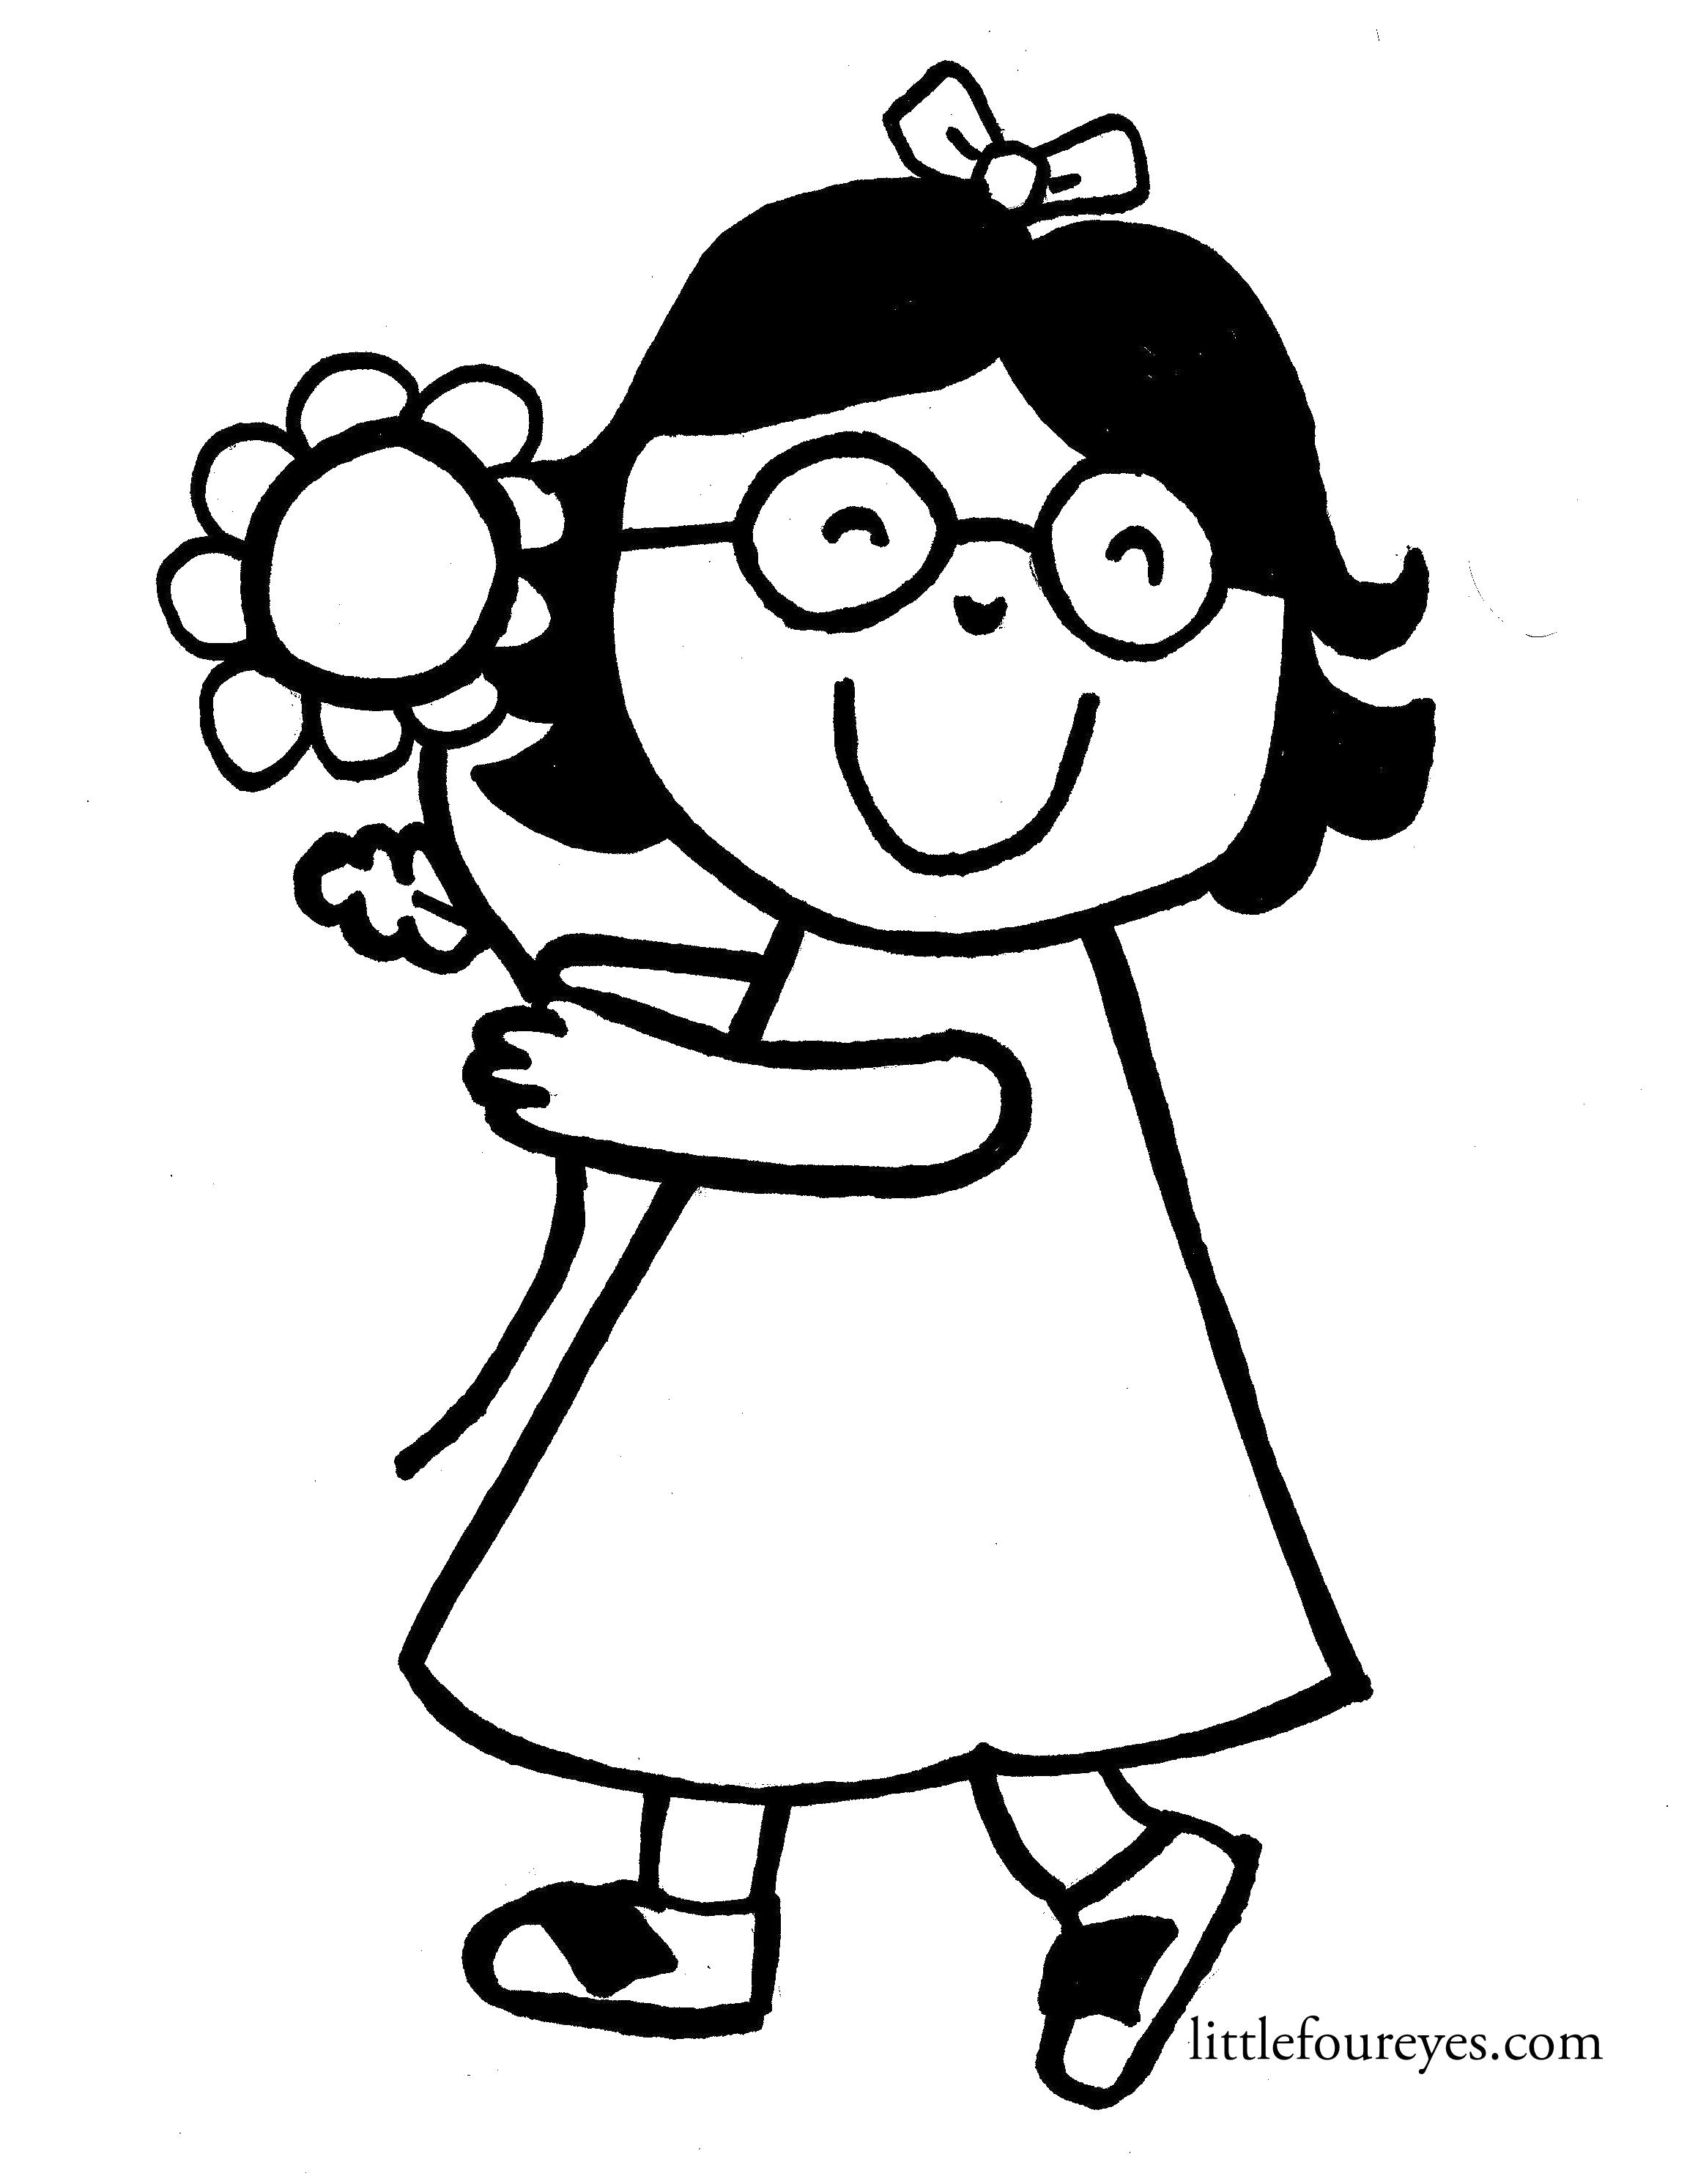 Glasses Coloring Pages - Coloring Home | 2982x2303